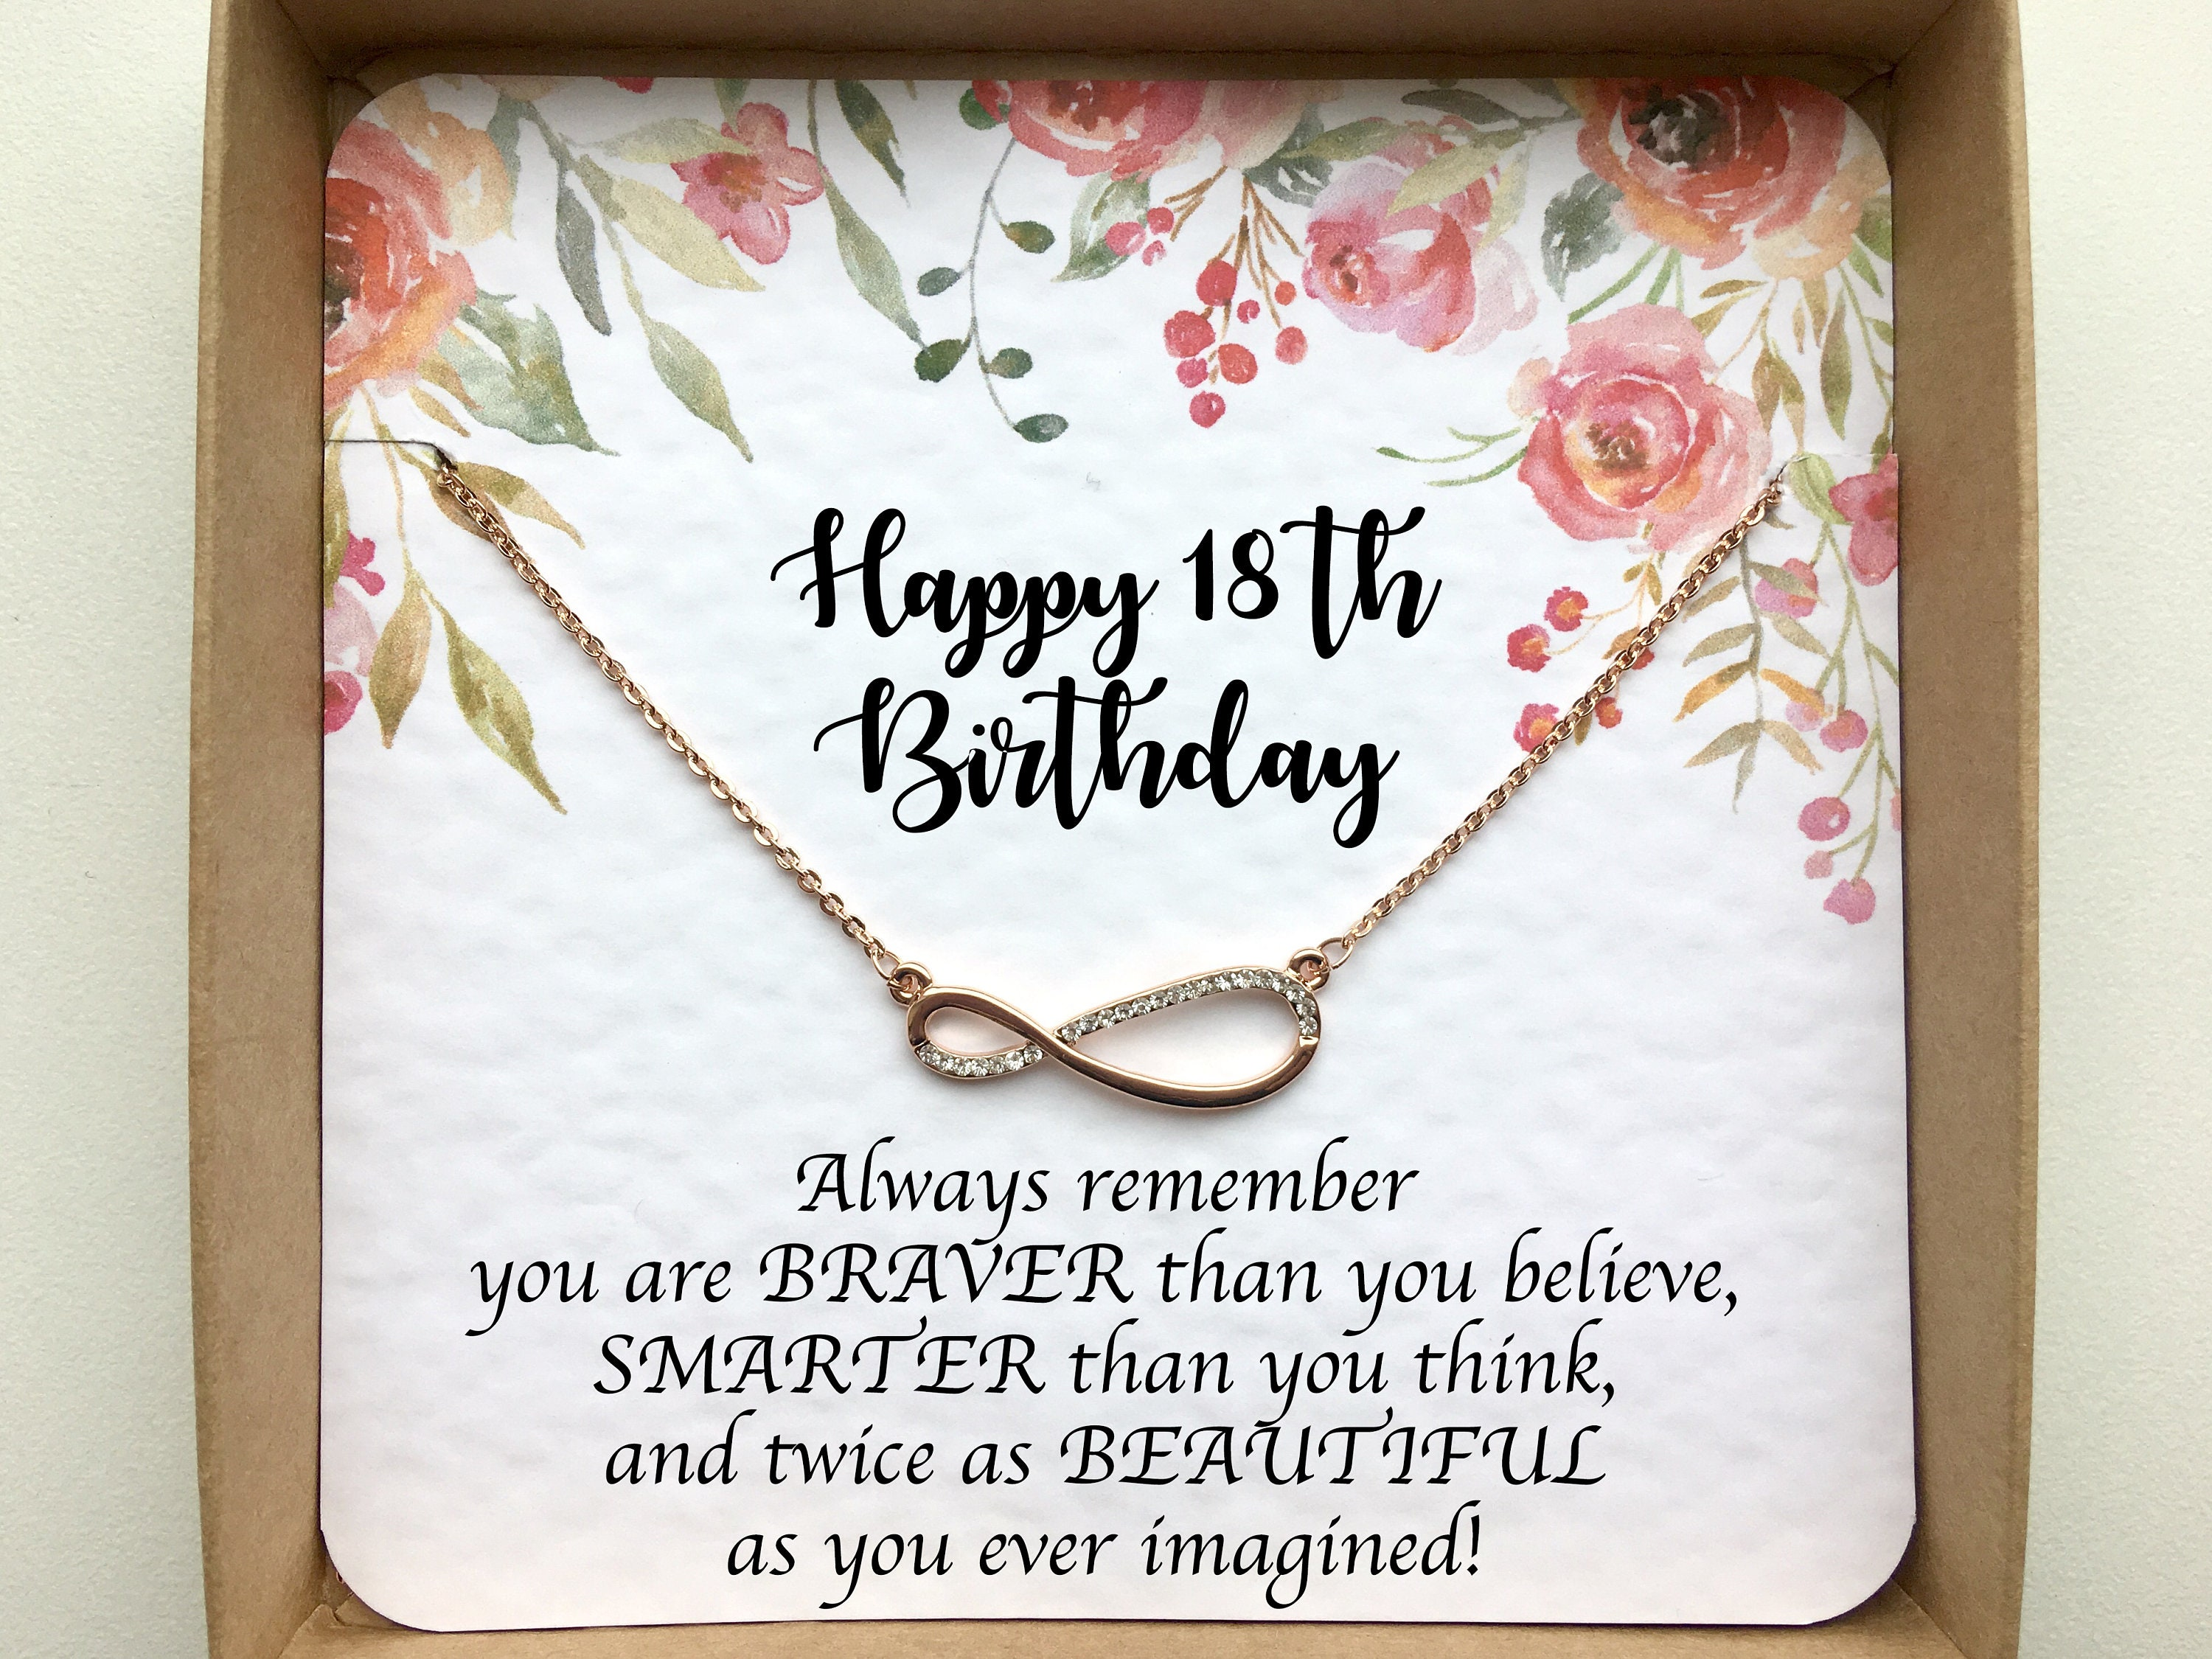 Rose Gold Infinity Necklace On Card 18th Birthday Gifts For